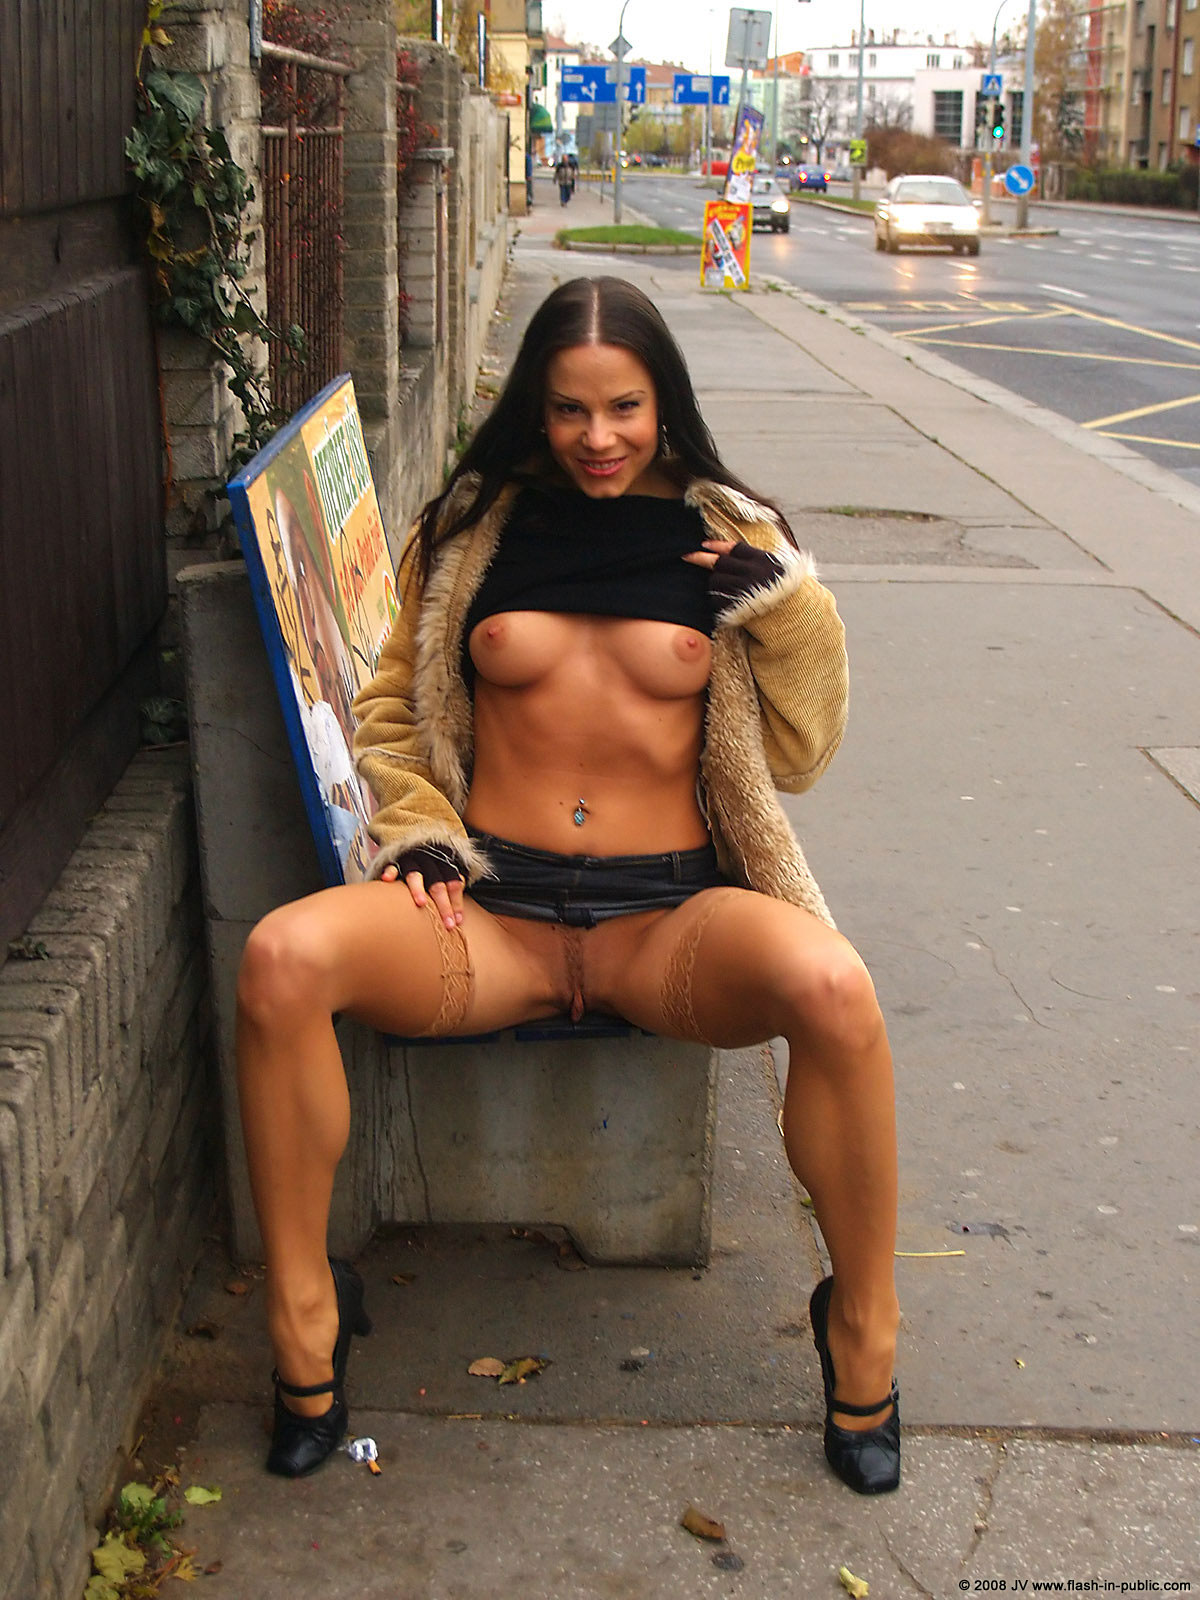 alexandra-g-bottomless-stockings-flash-in-public-02